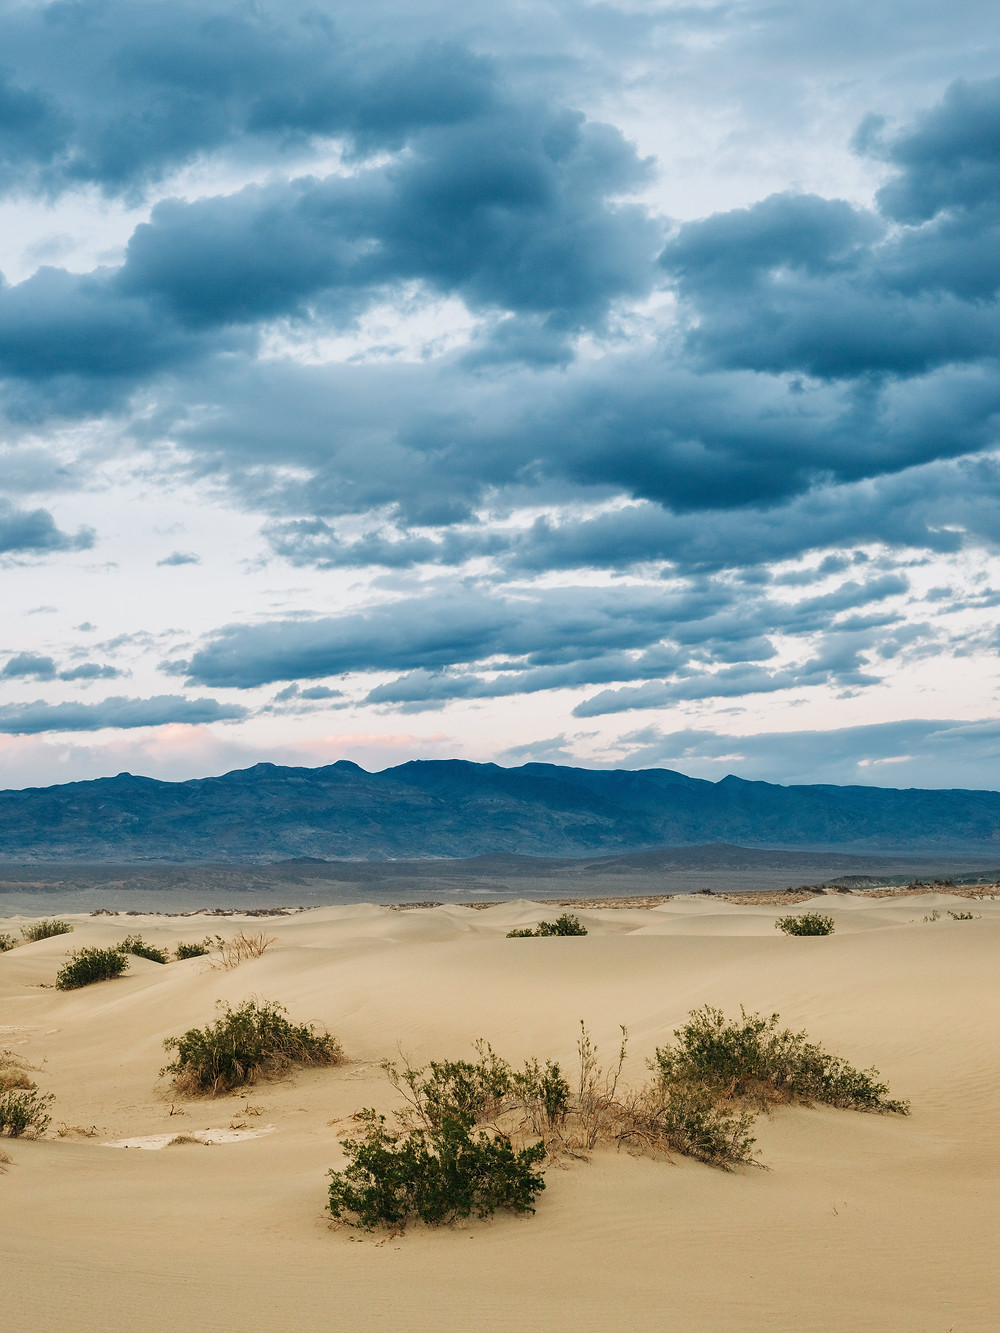 Mesquite flat sand dunes at death valley national park captured by las vegas wedding photographer hayway films. Blue cloudy skies, beige sand, and green bushes.